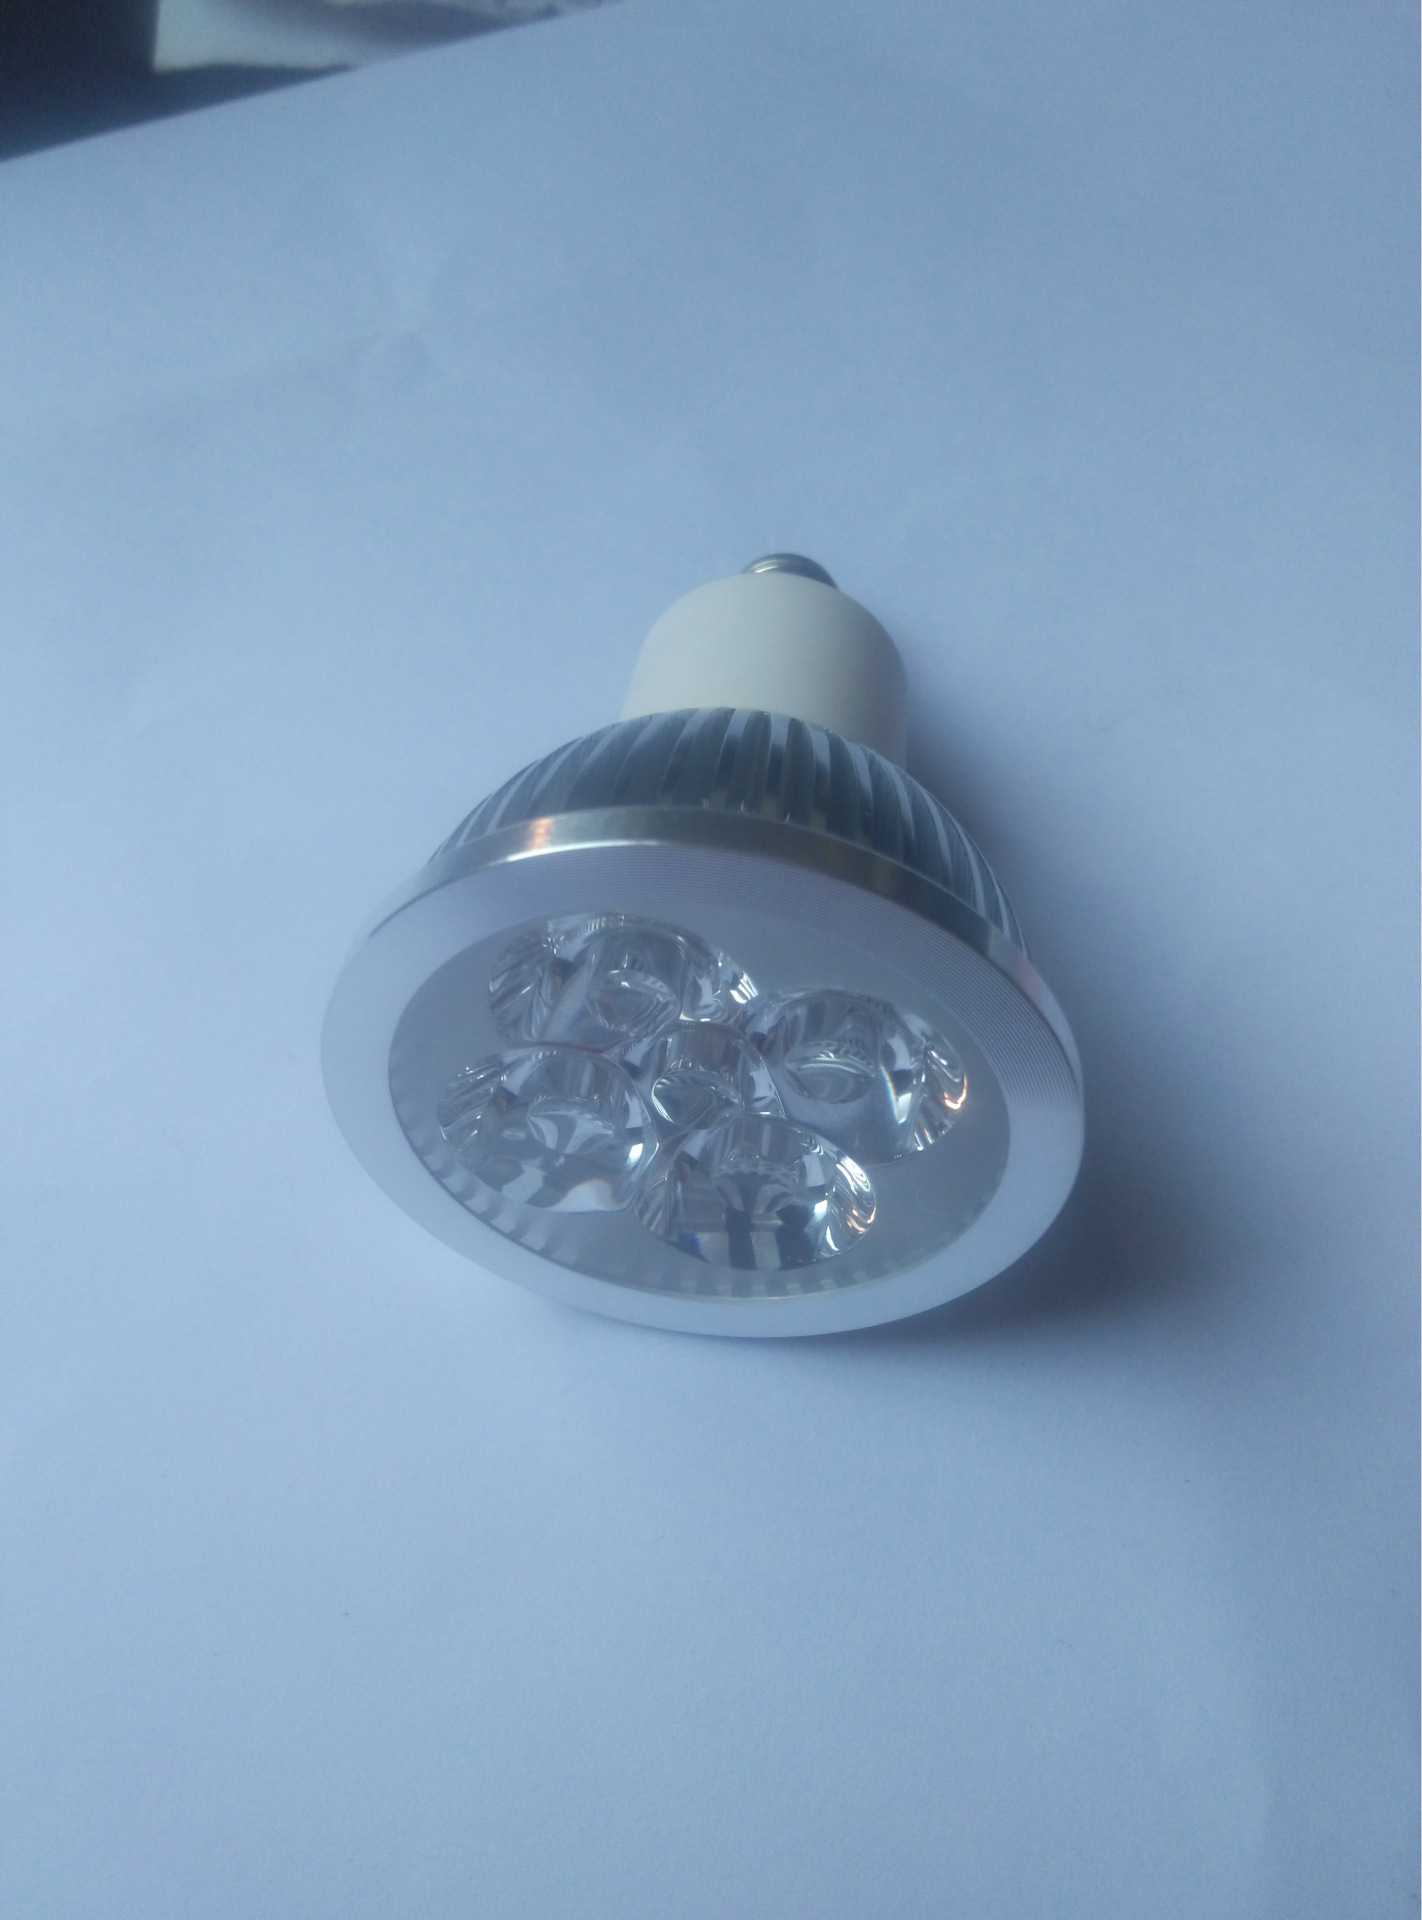 E11 E12 E14 GU10 4 watt LED light bulbs, Use 4 pcs 1 watt leds